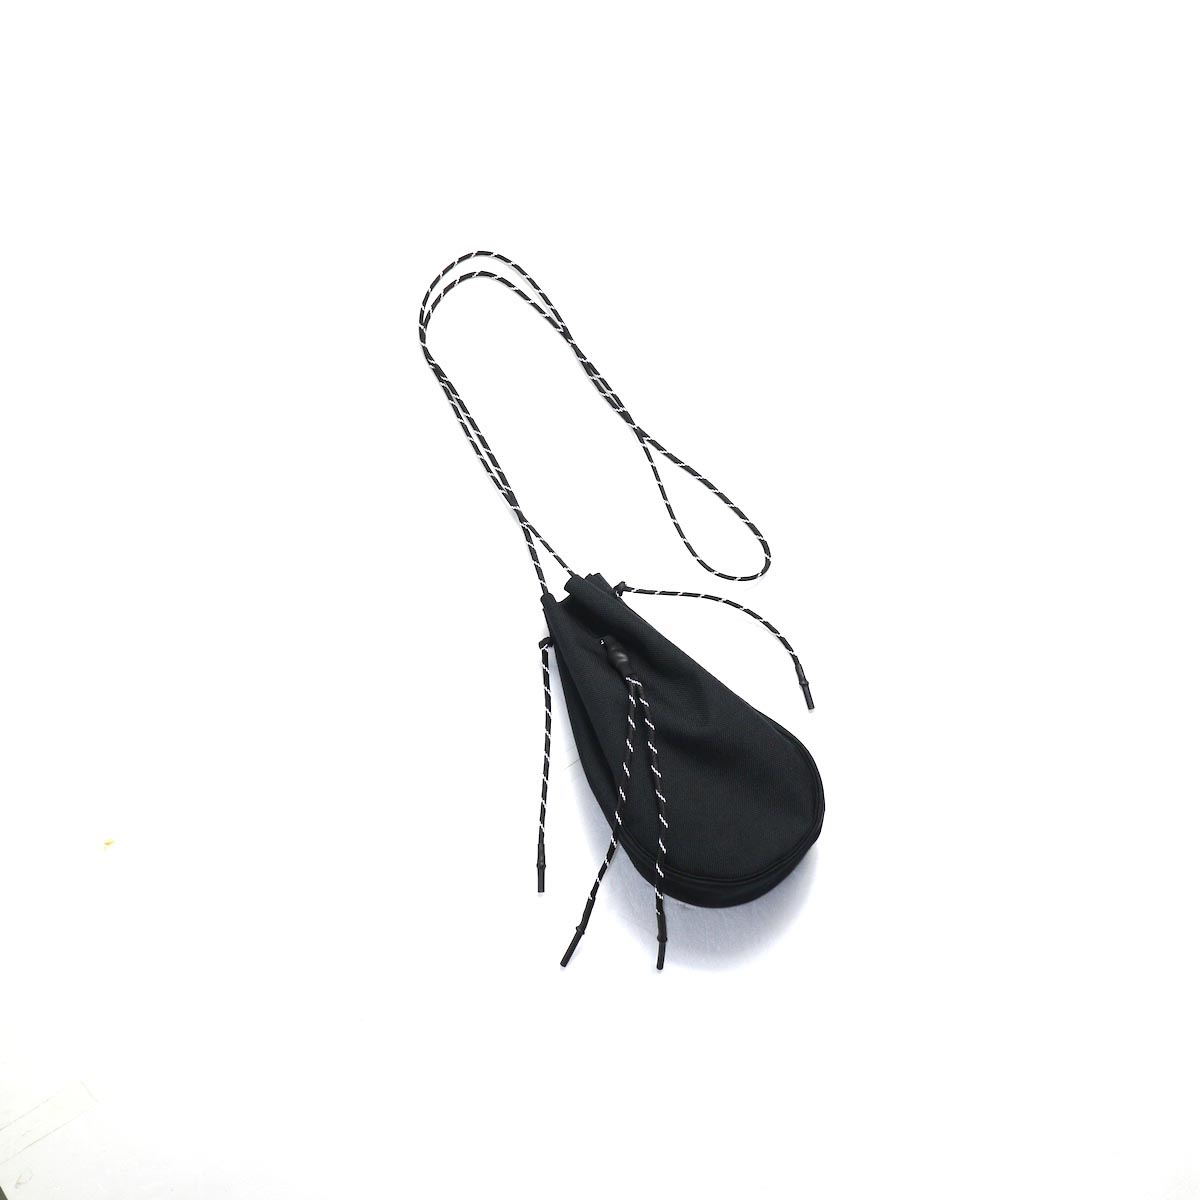 吉岡衣料店 / drawstring bag -S-. (Black)